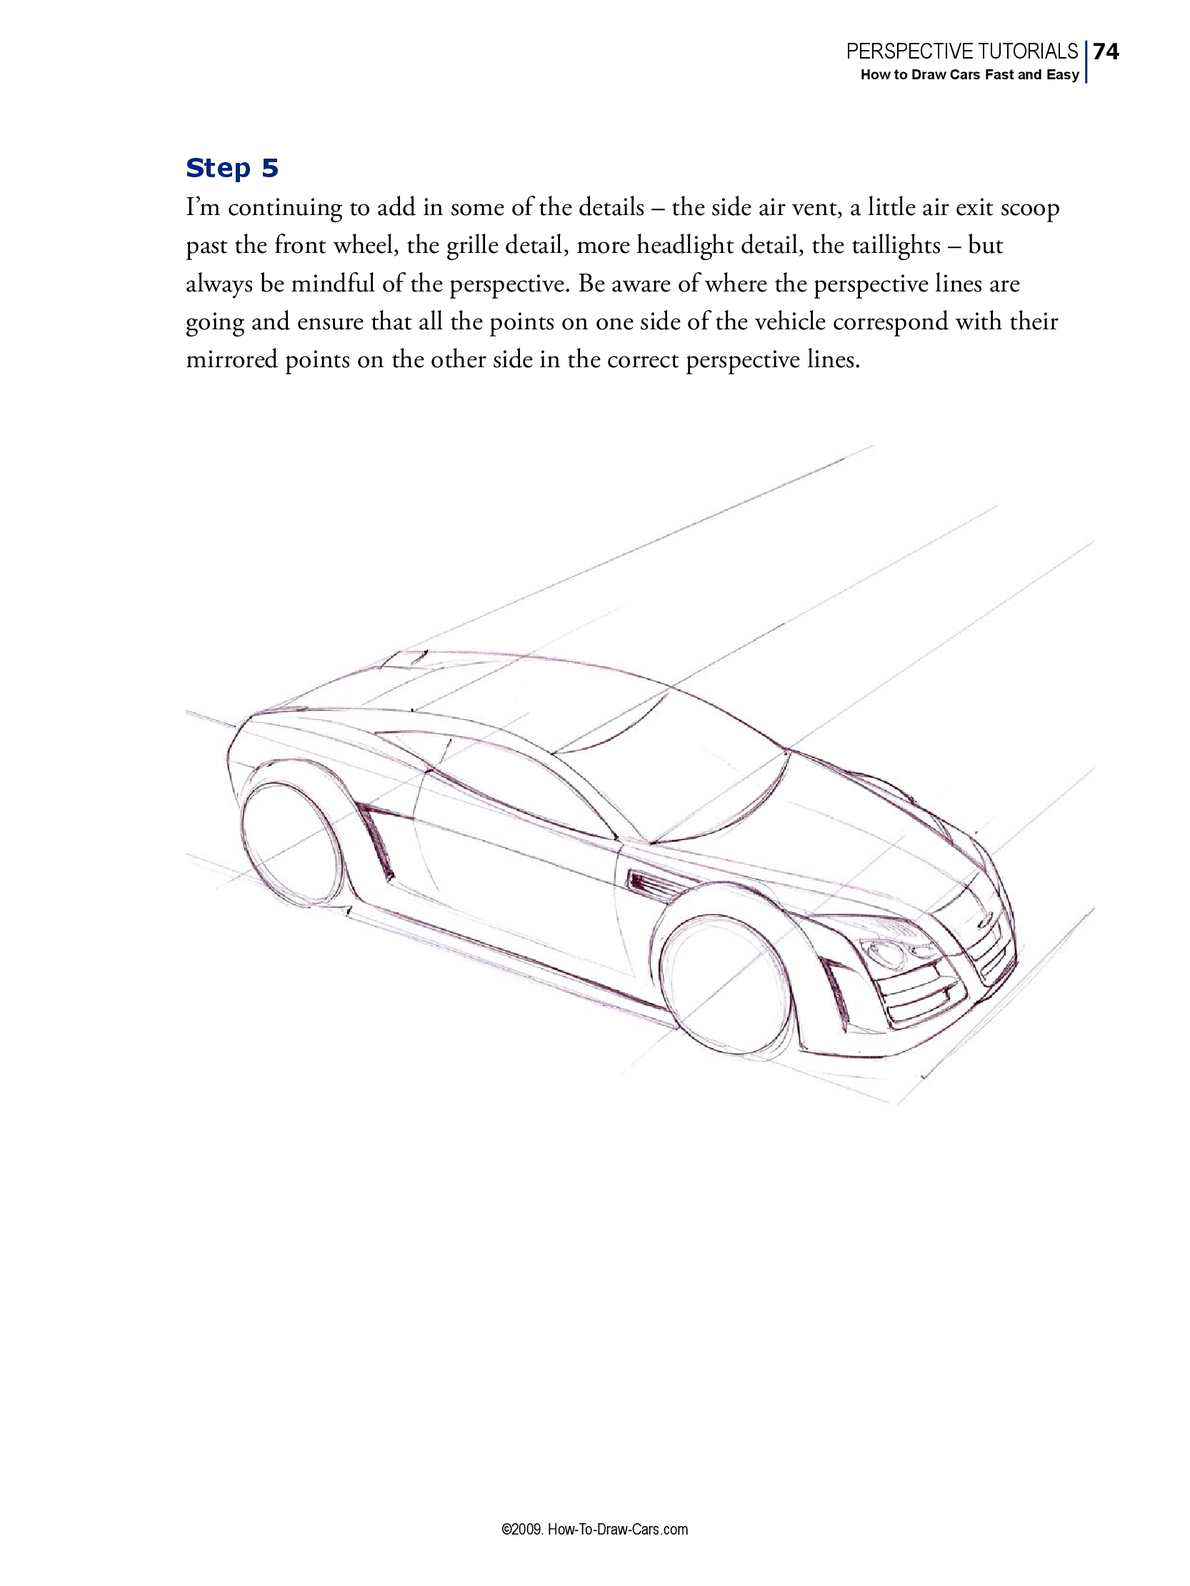 How To Draw Cars Fast And Easy Calameo Downloader